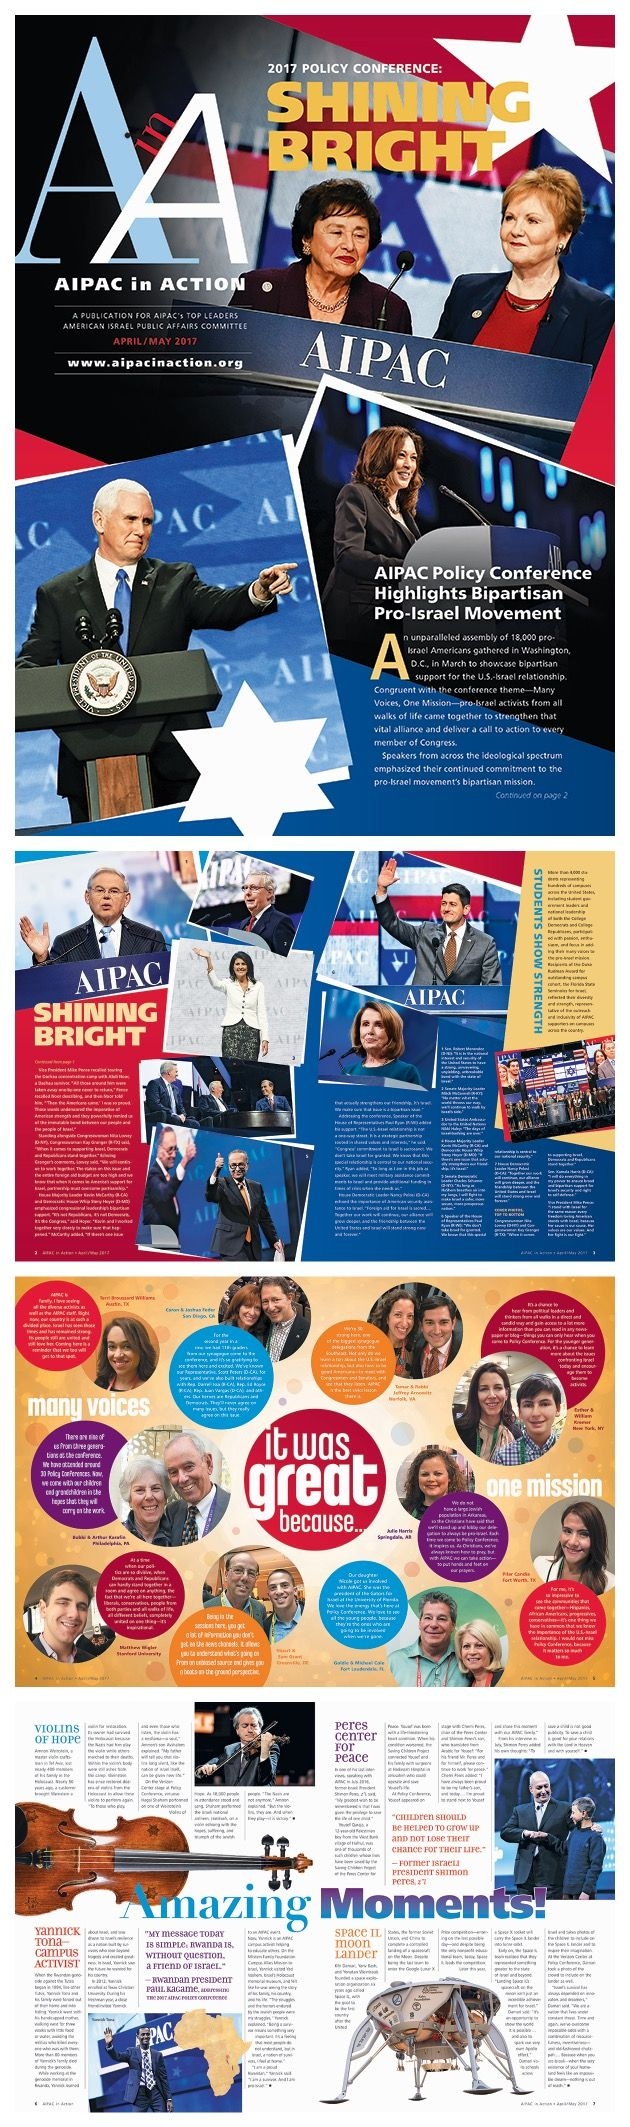 AIPAC in Action — Cover and interior spreads of the Post-Policy Conference edition of the newsletter, which is aimed at donor outreach & retention for the American Israel Public Affairs Committee. By Beth Singer Design.